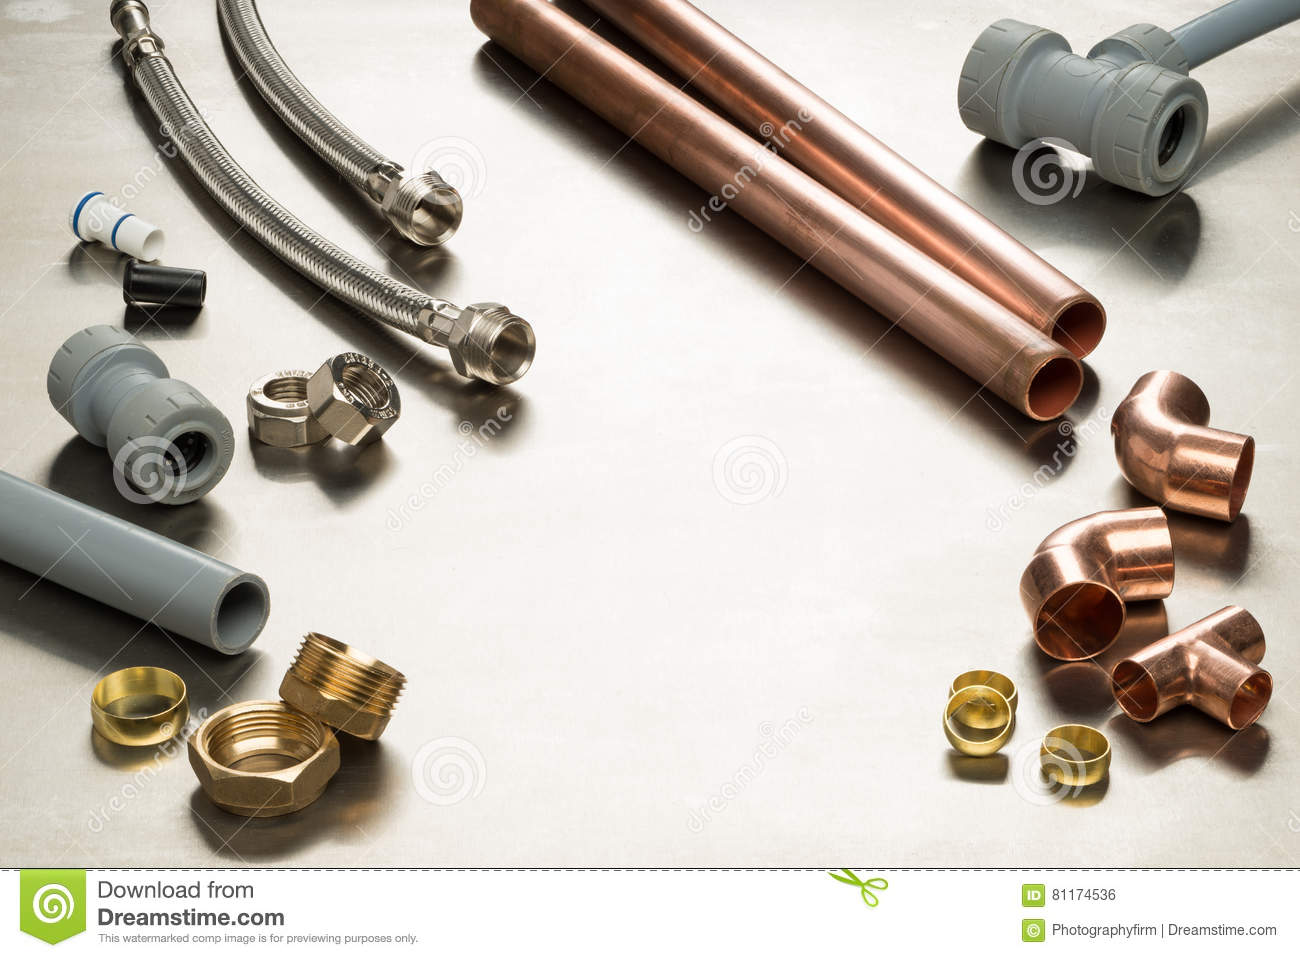 Selection of plumbers tools and plumbing materials with